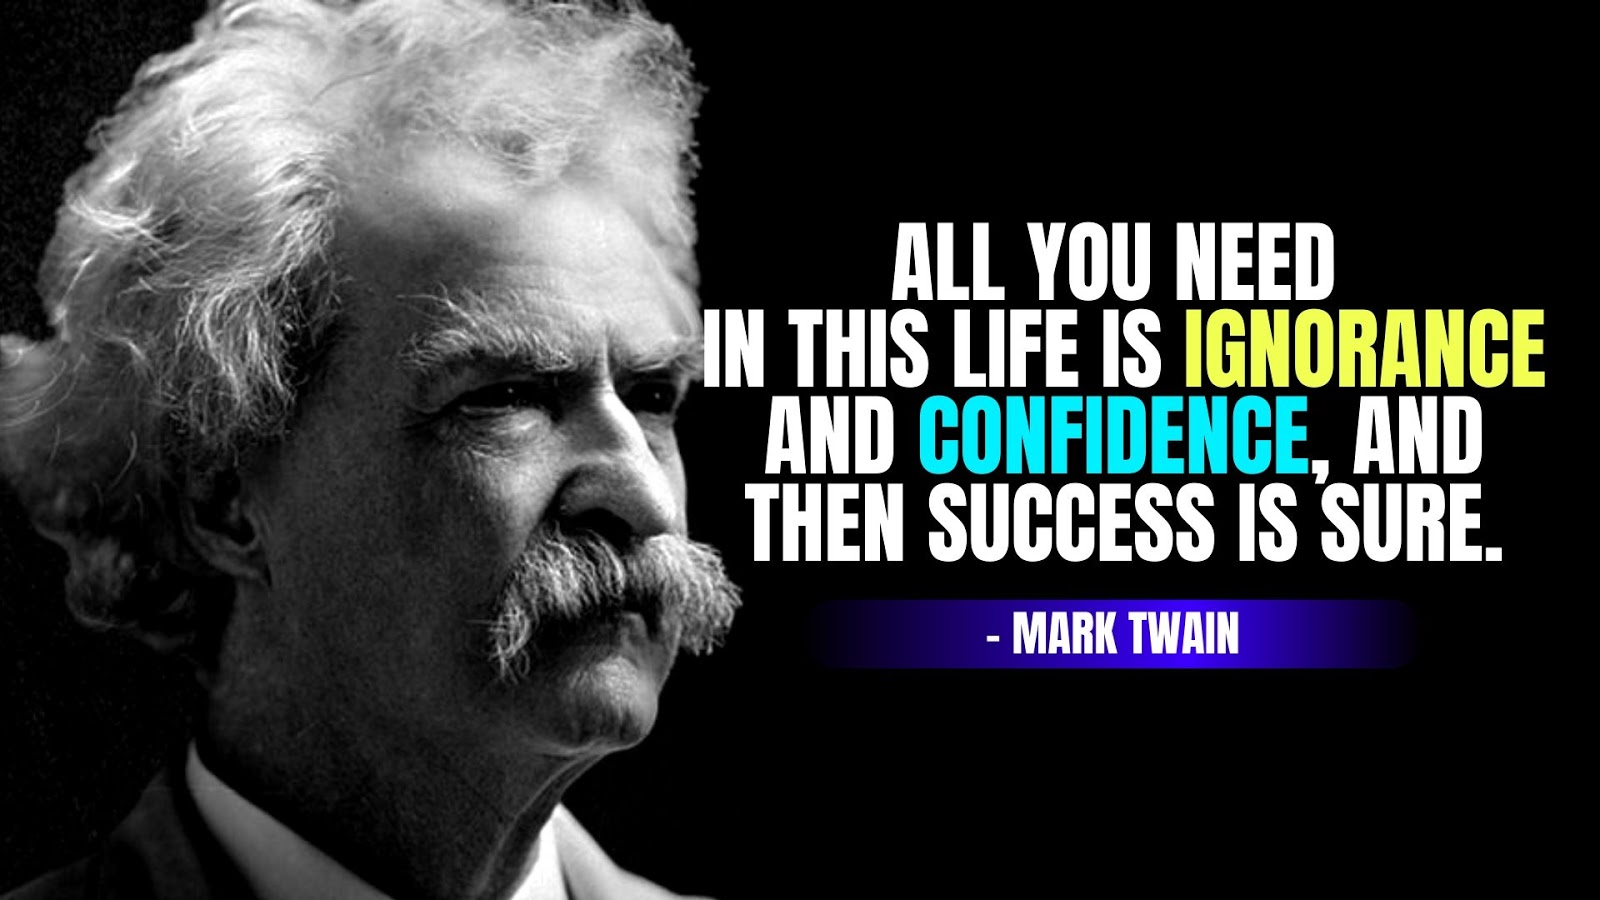 Mark Twain Quotes on Success, Mark Twain Quotes on Life